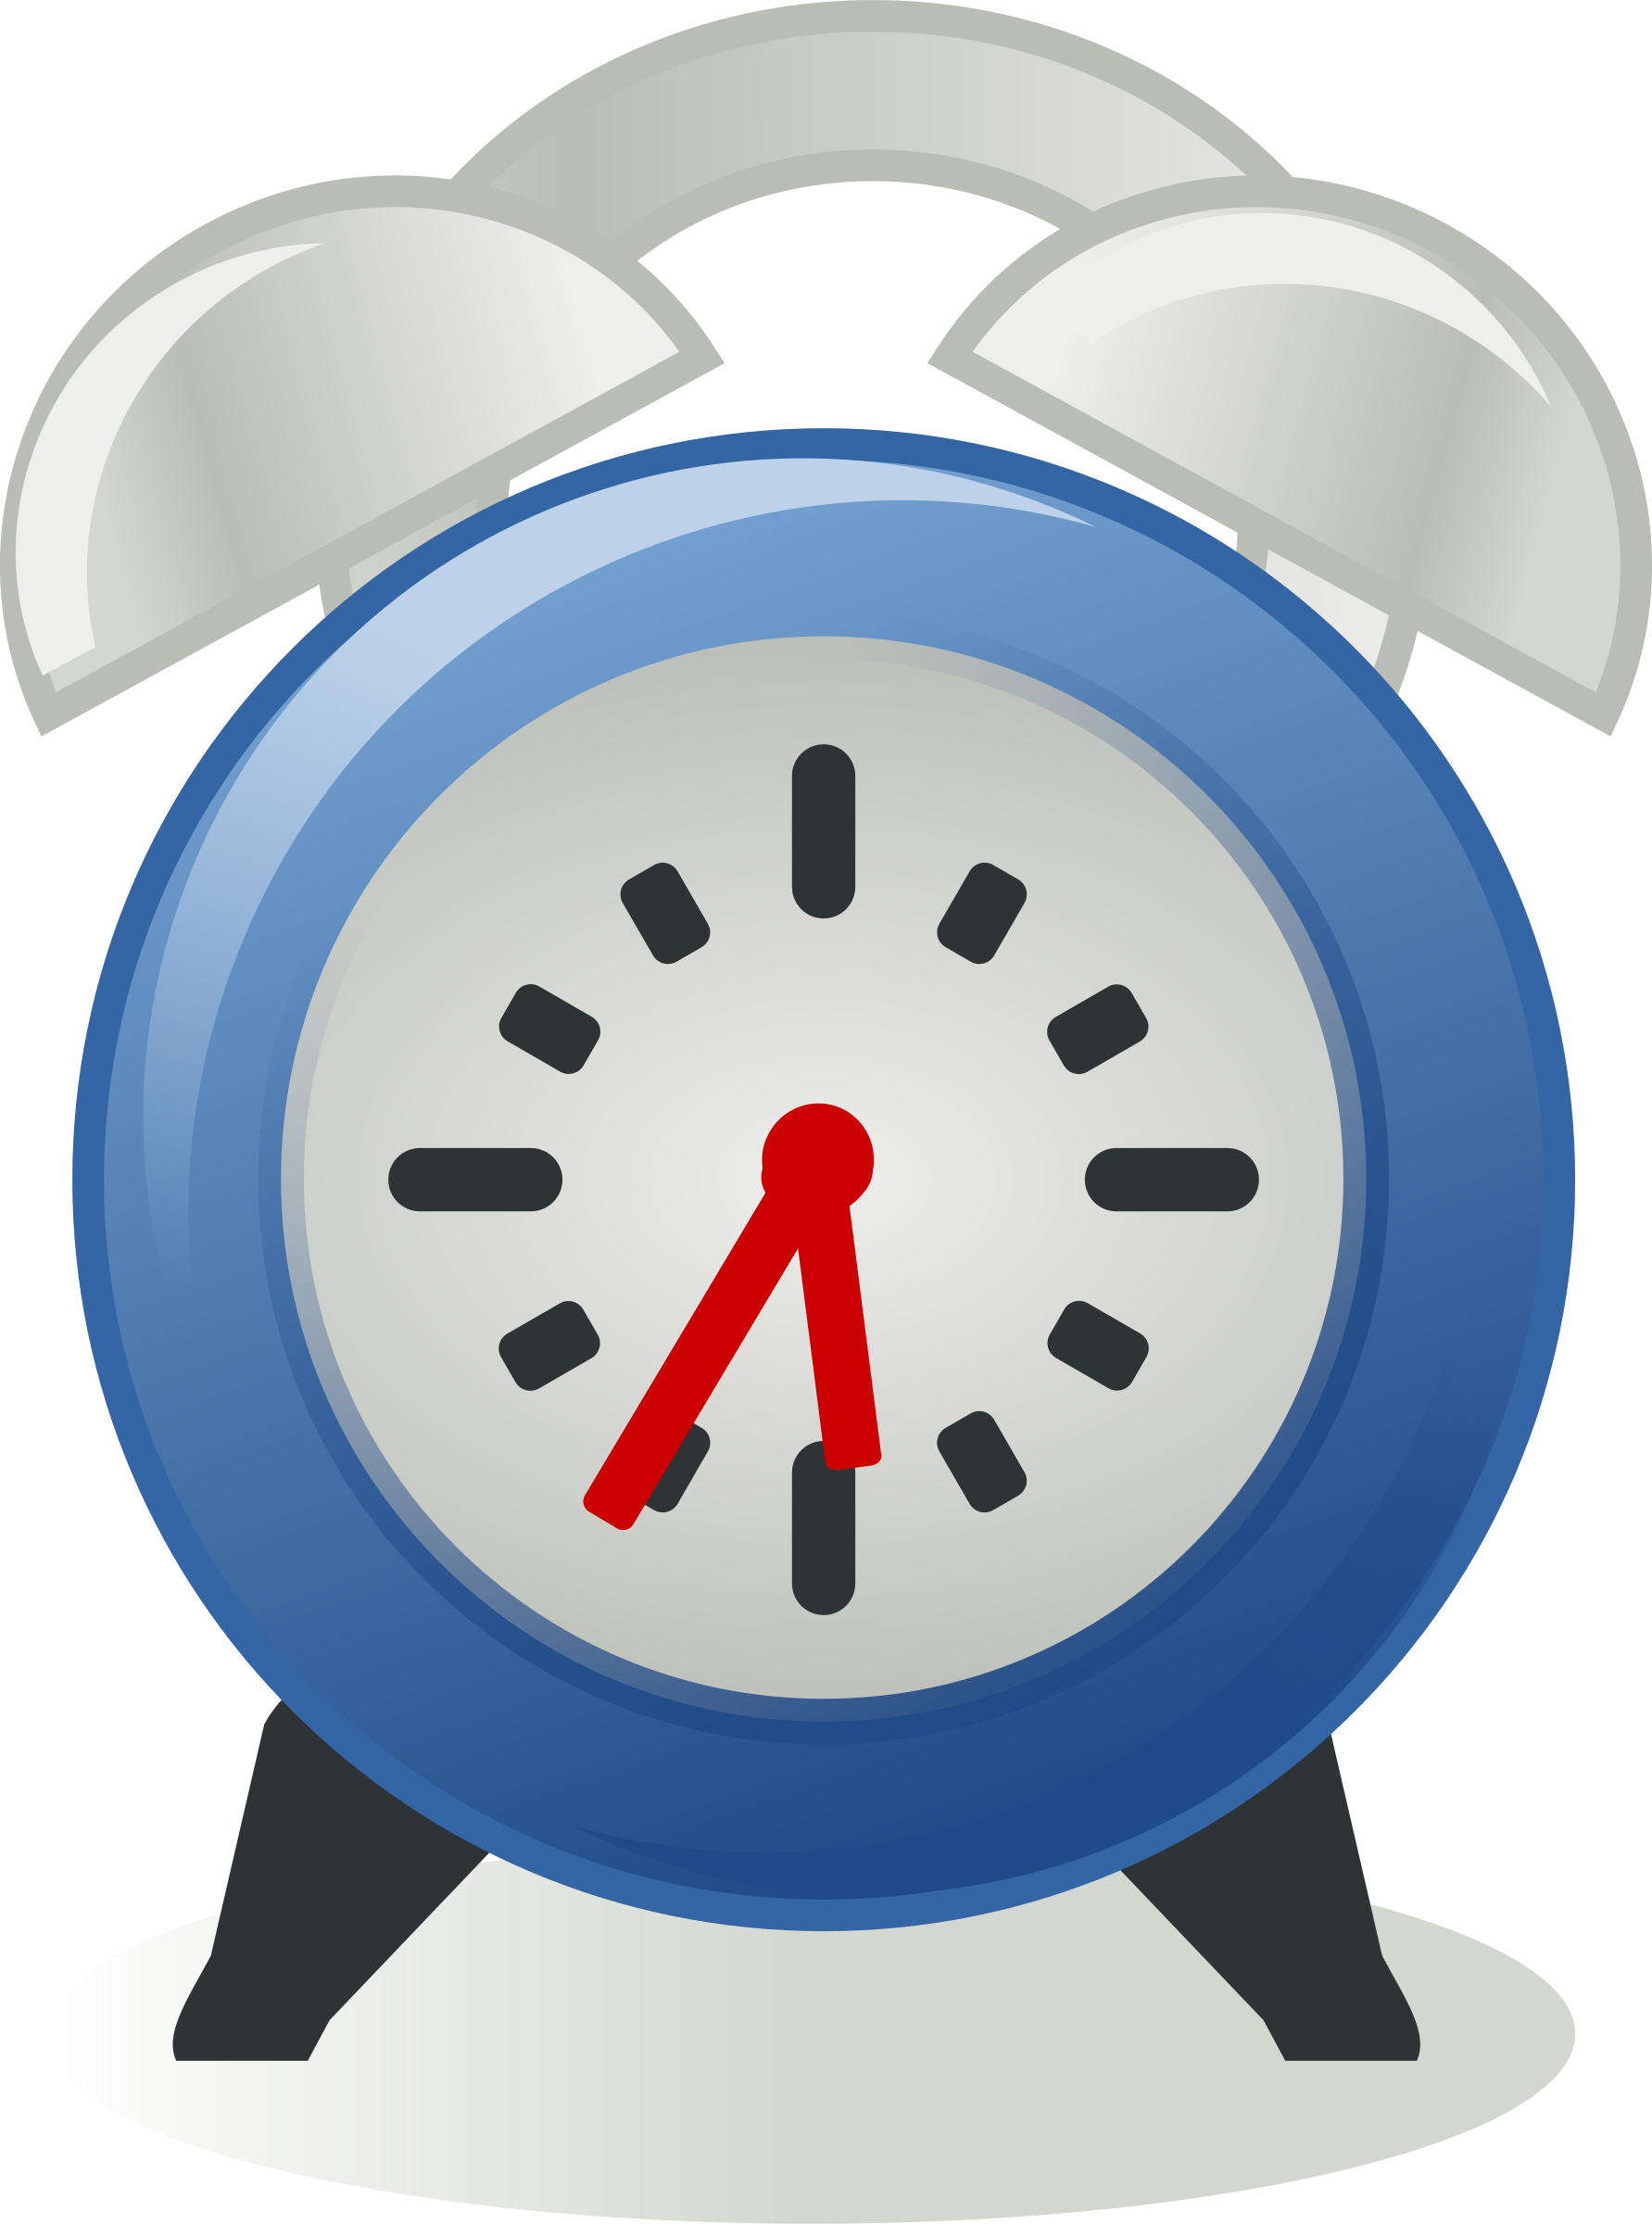 banner royalty free download . Alarm clipart small clock